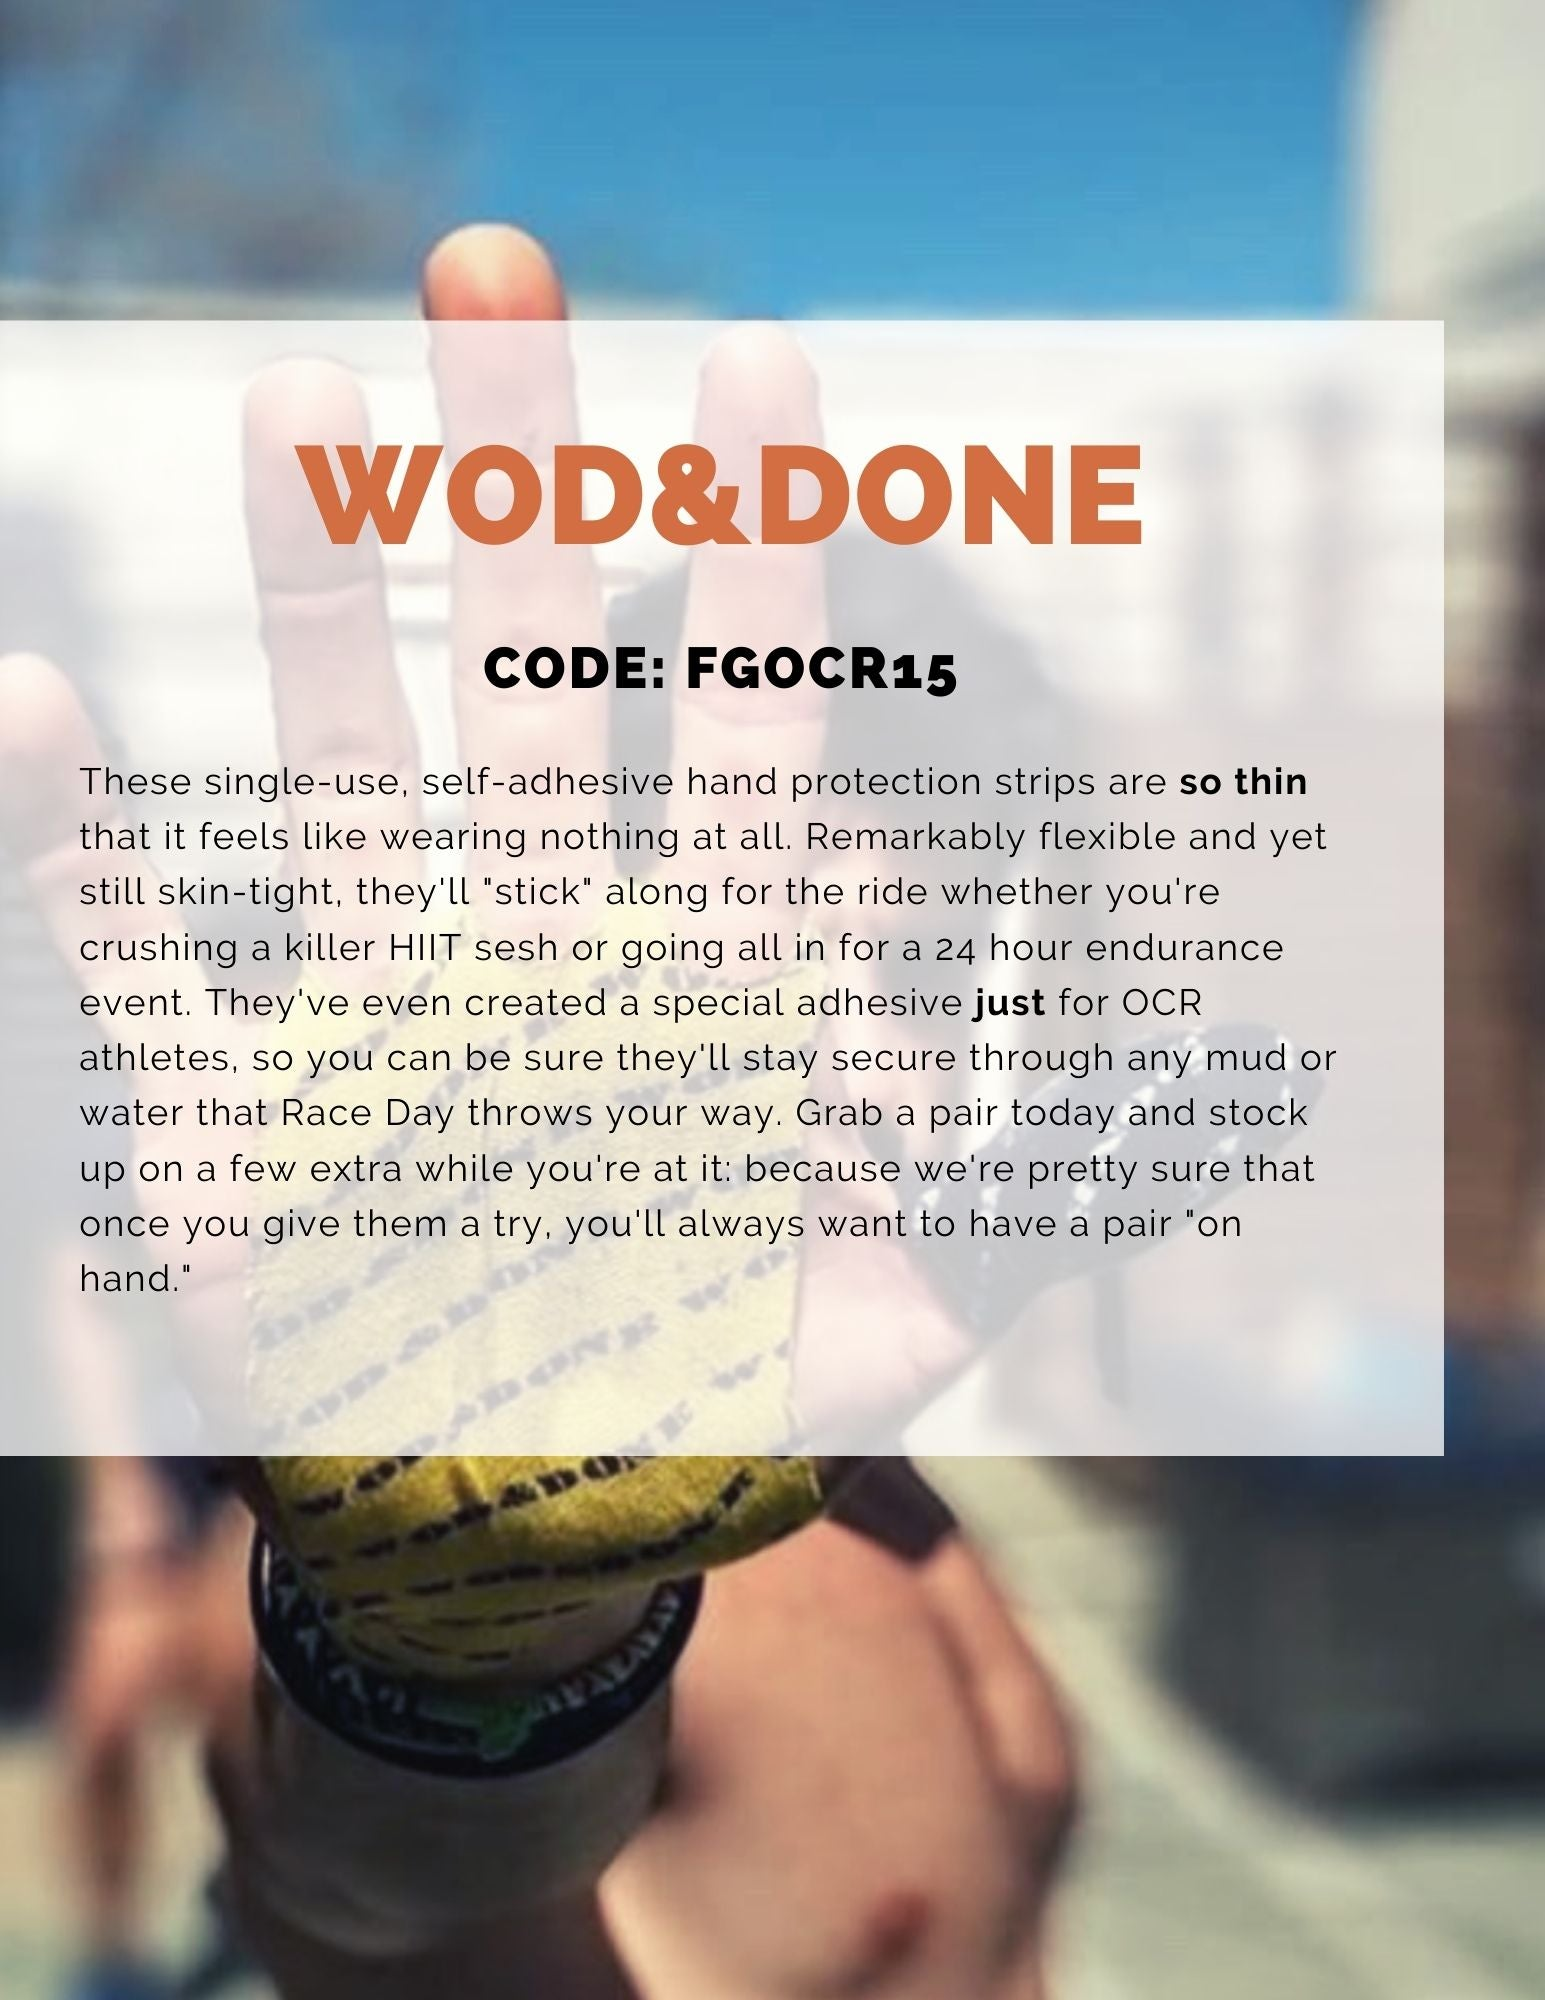 WODNDONE self adhesive grip protection discount code